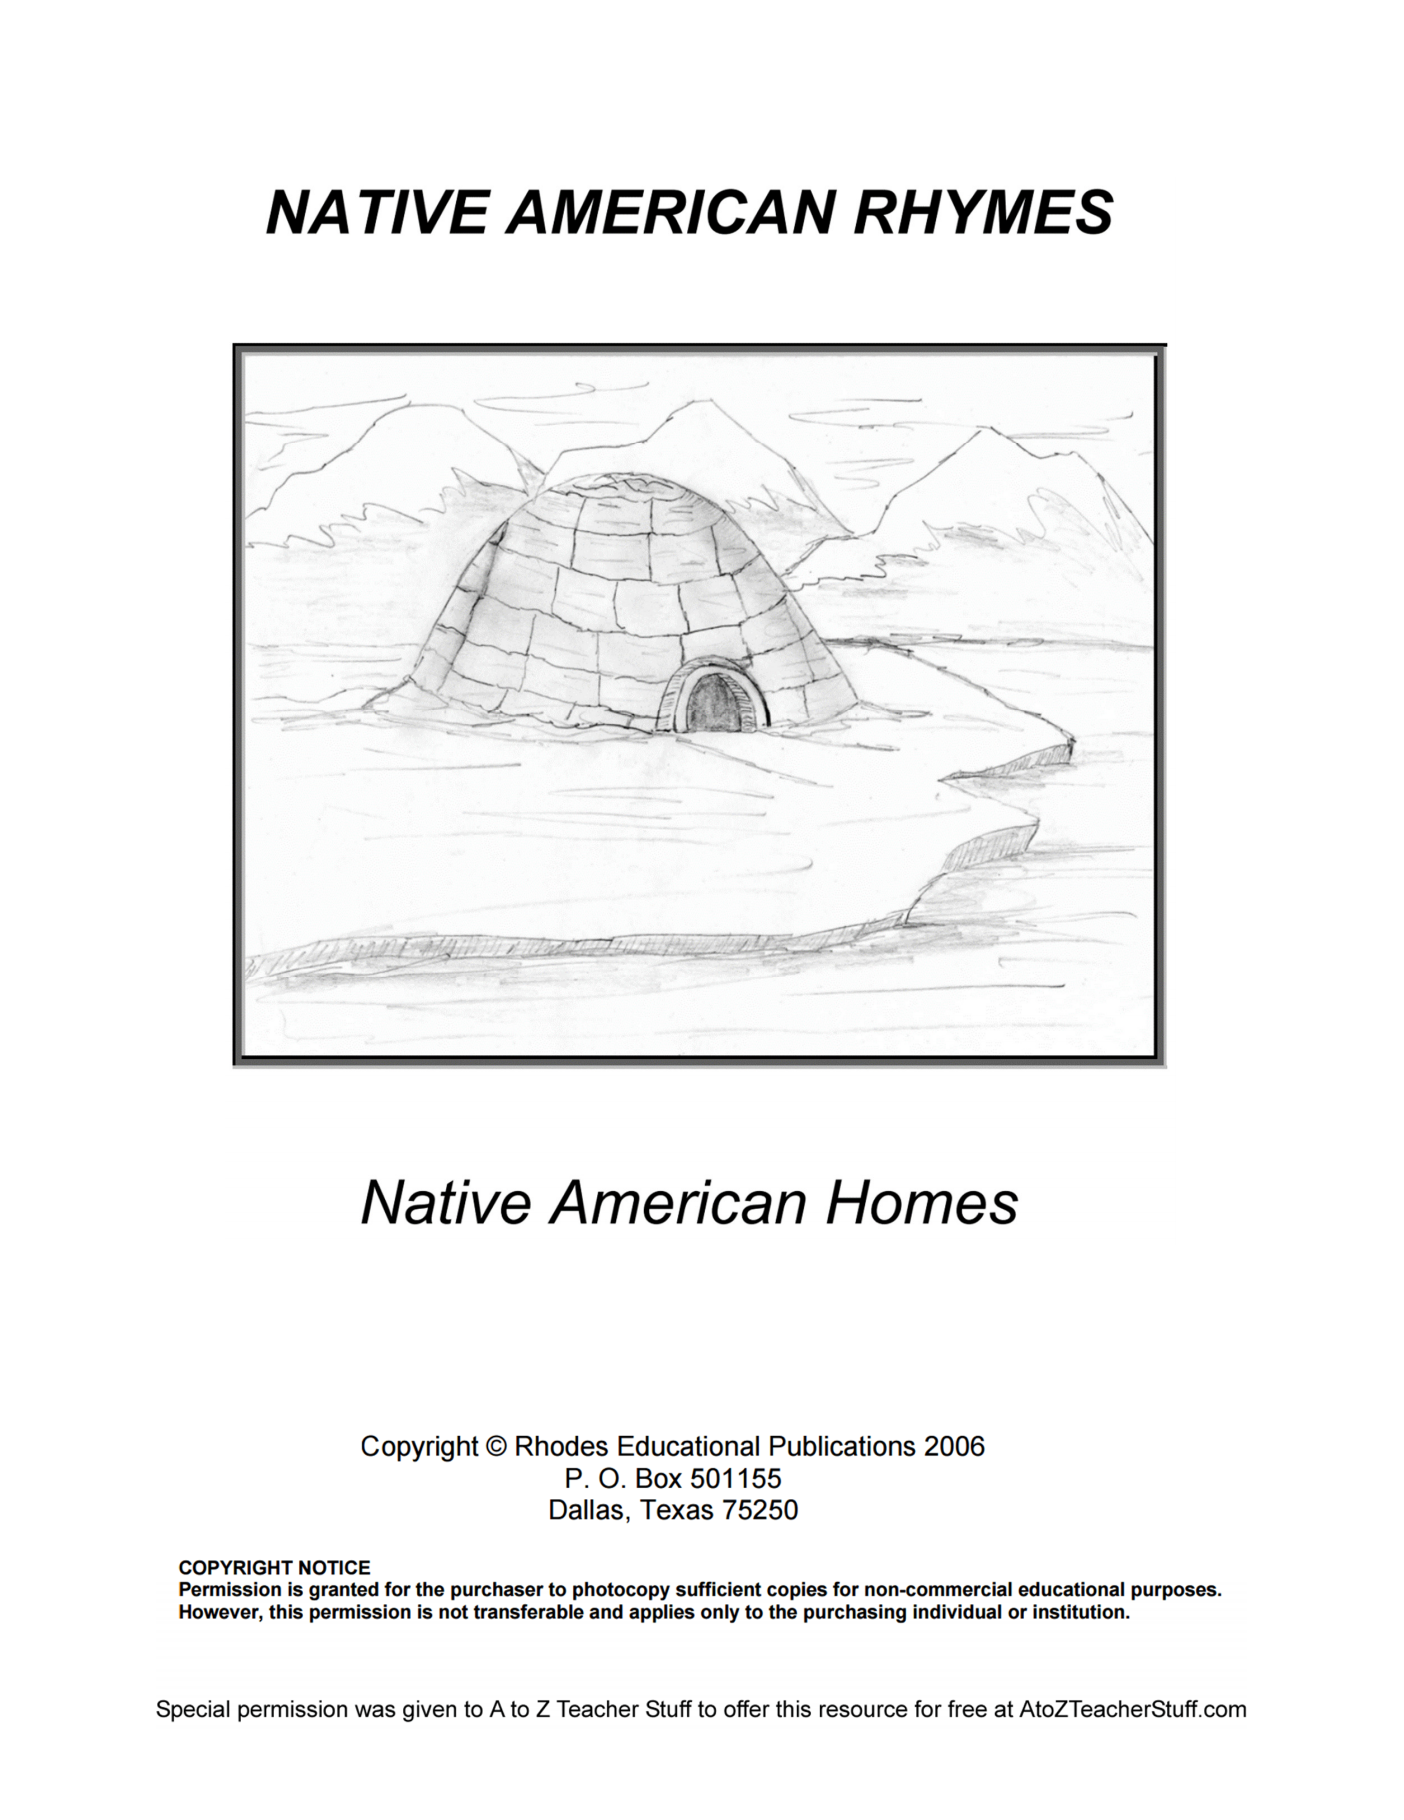 Native American Rhymes Printable Resources | A to Z ...